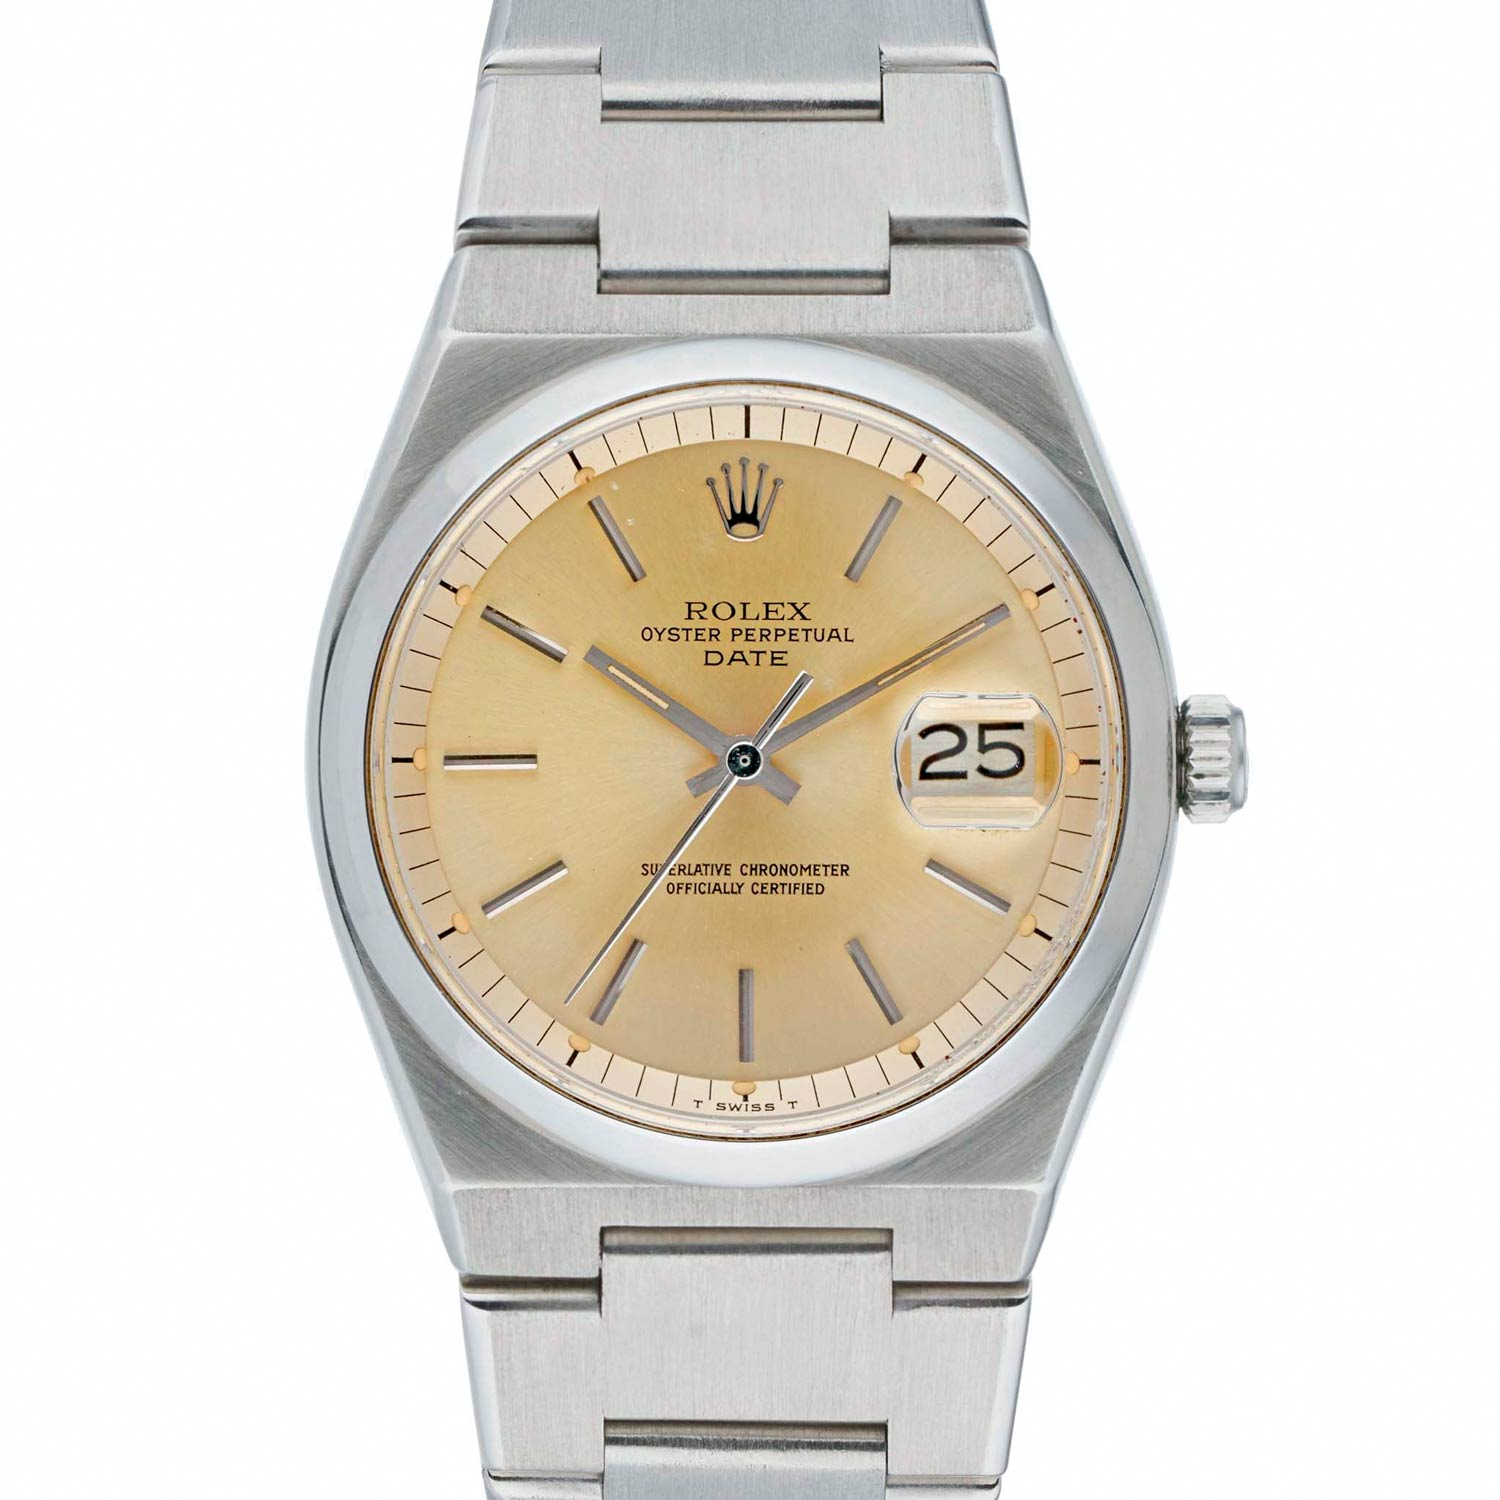 A steel Rolex 1530 with automatic movement in Oysterquartz case. The reference 1530 housed a regular Datejust movement and dial but cased in a new steel integrated bracelet watch.